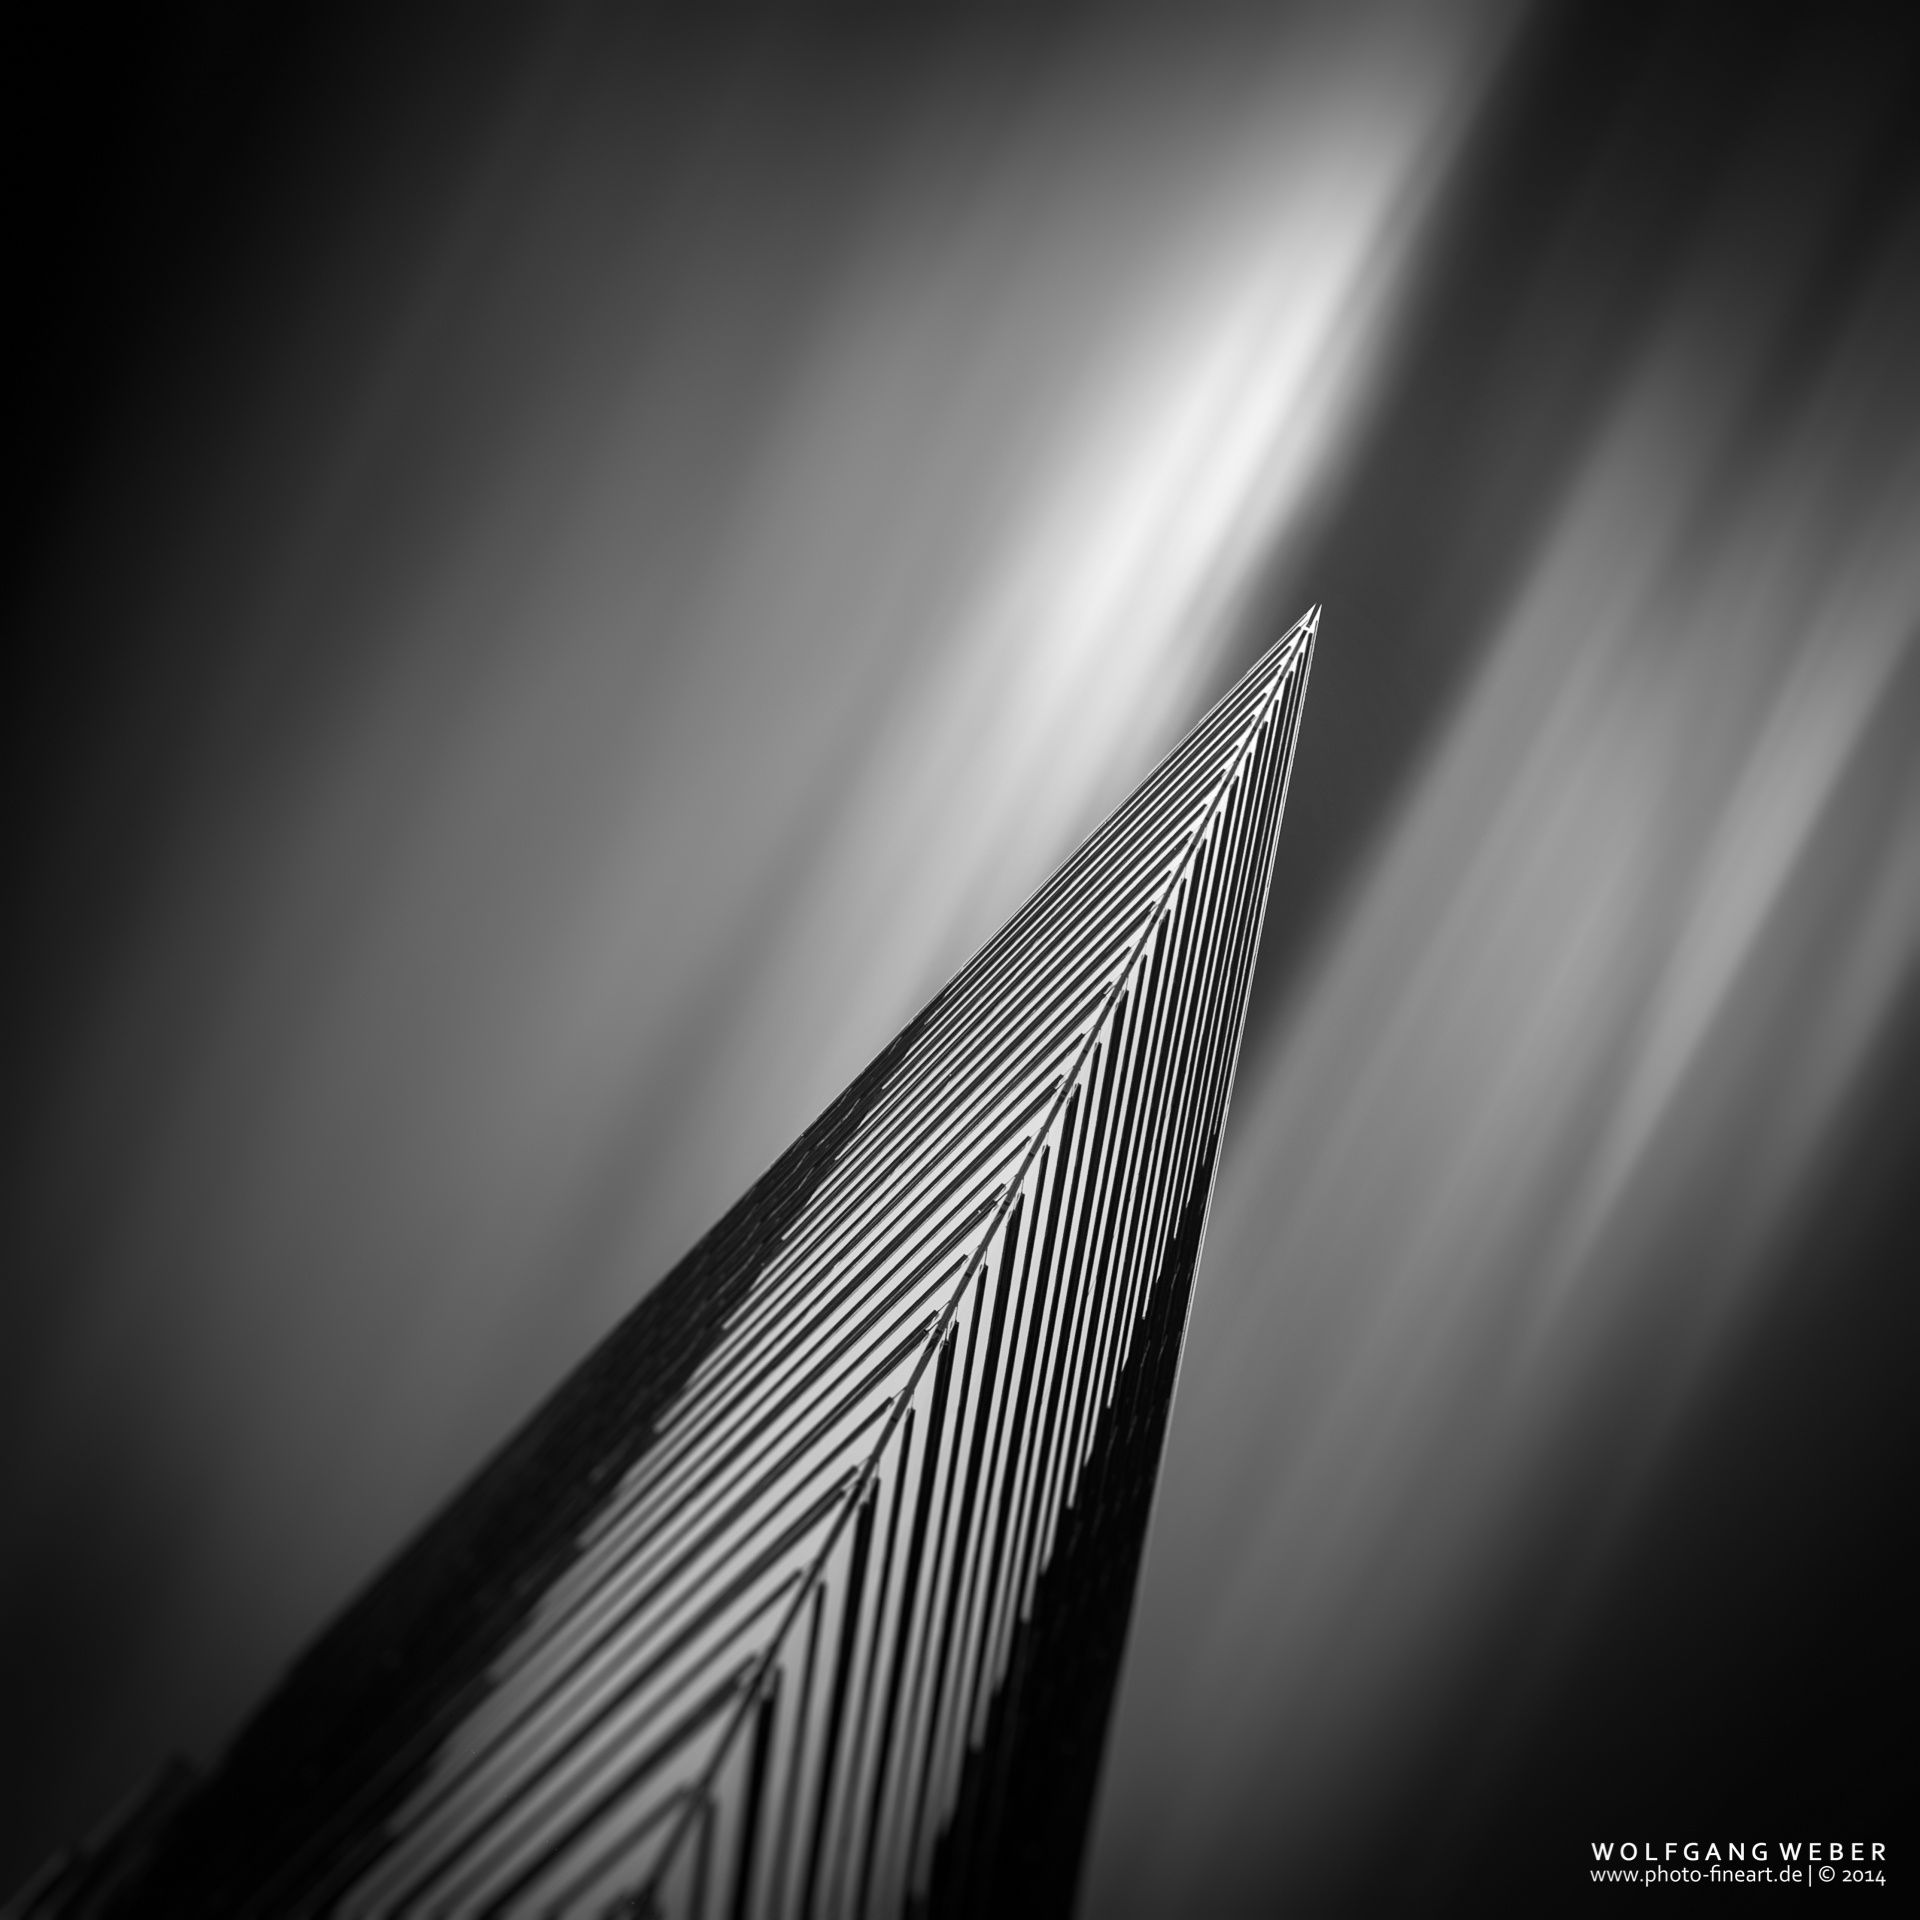 The Cutting Edge by Wolfgang Weber on 500px